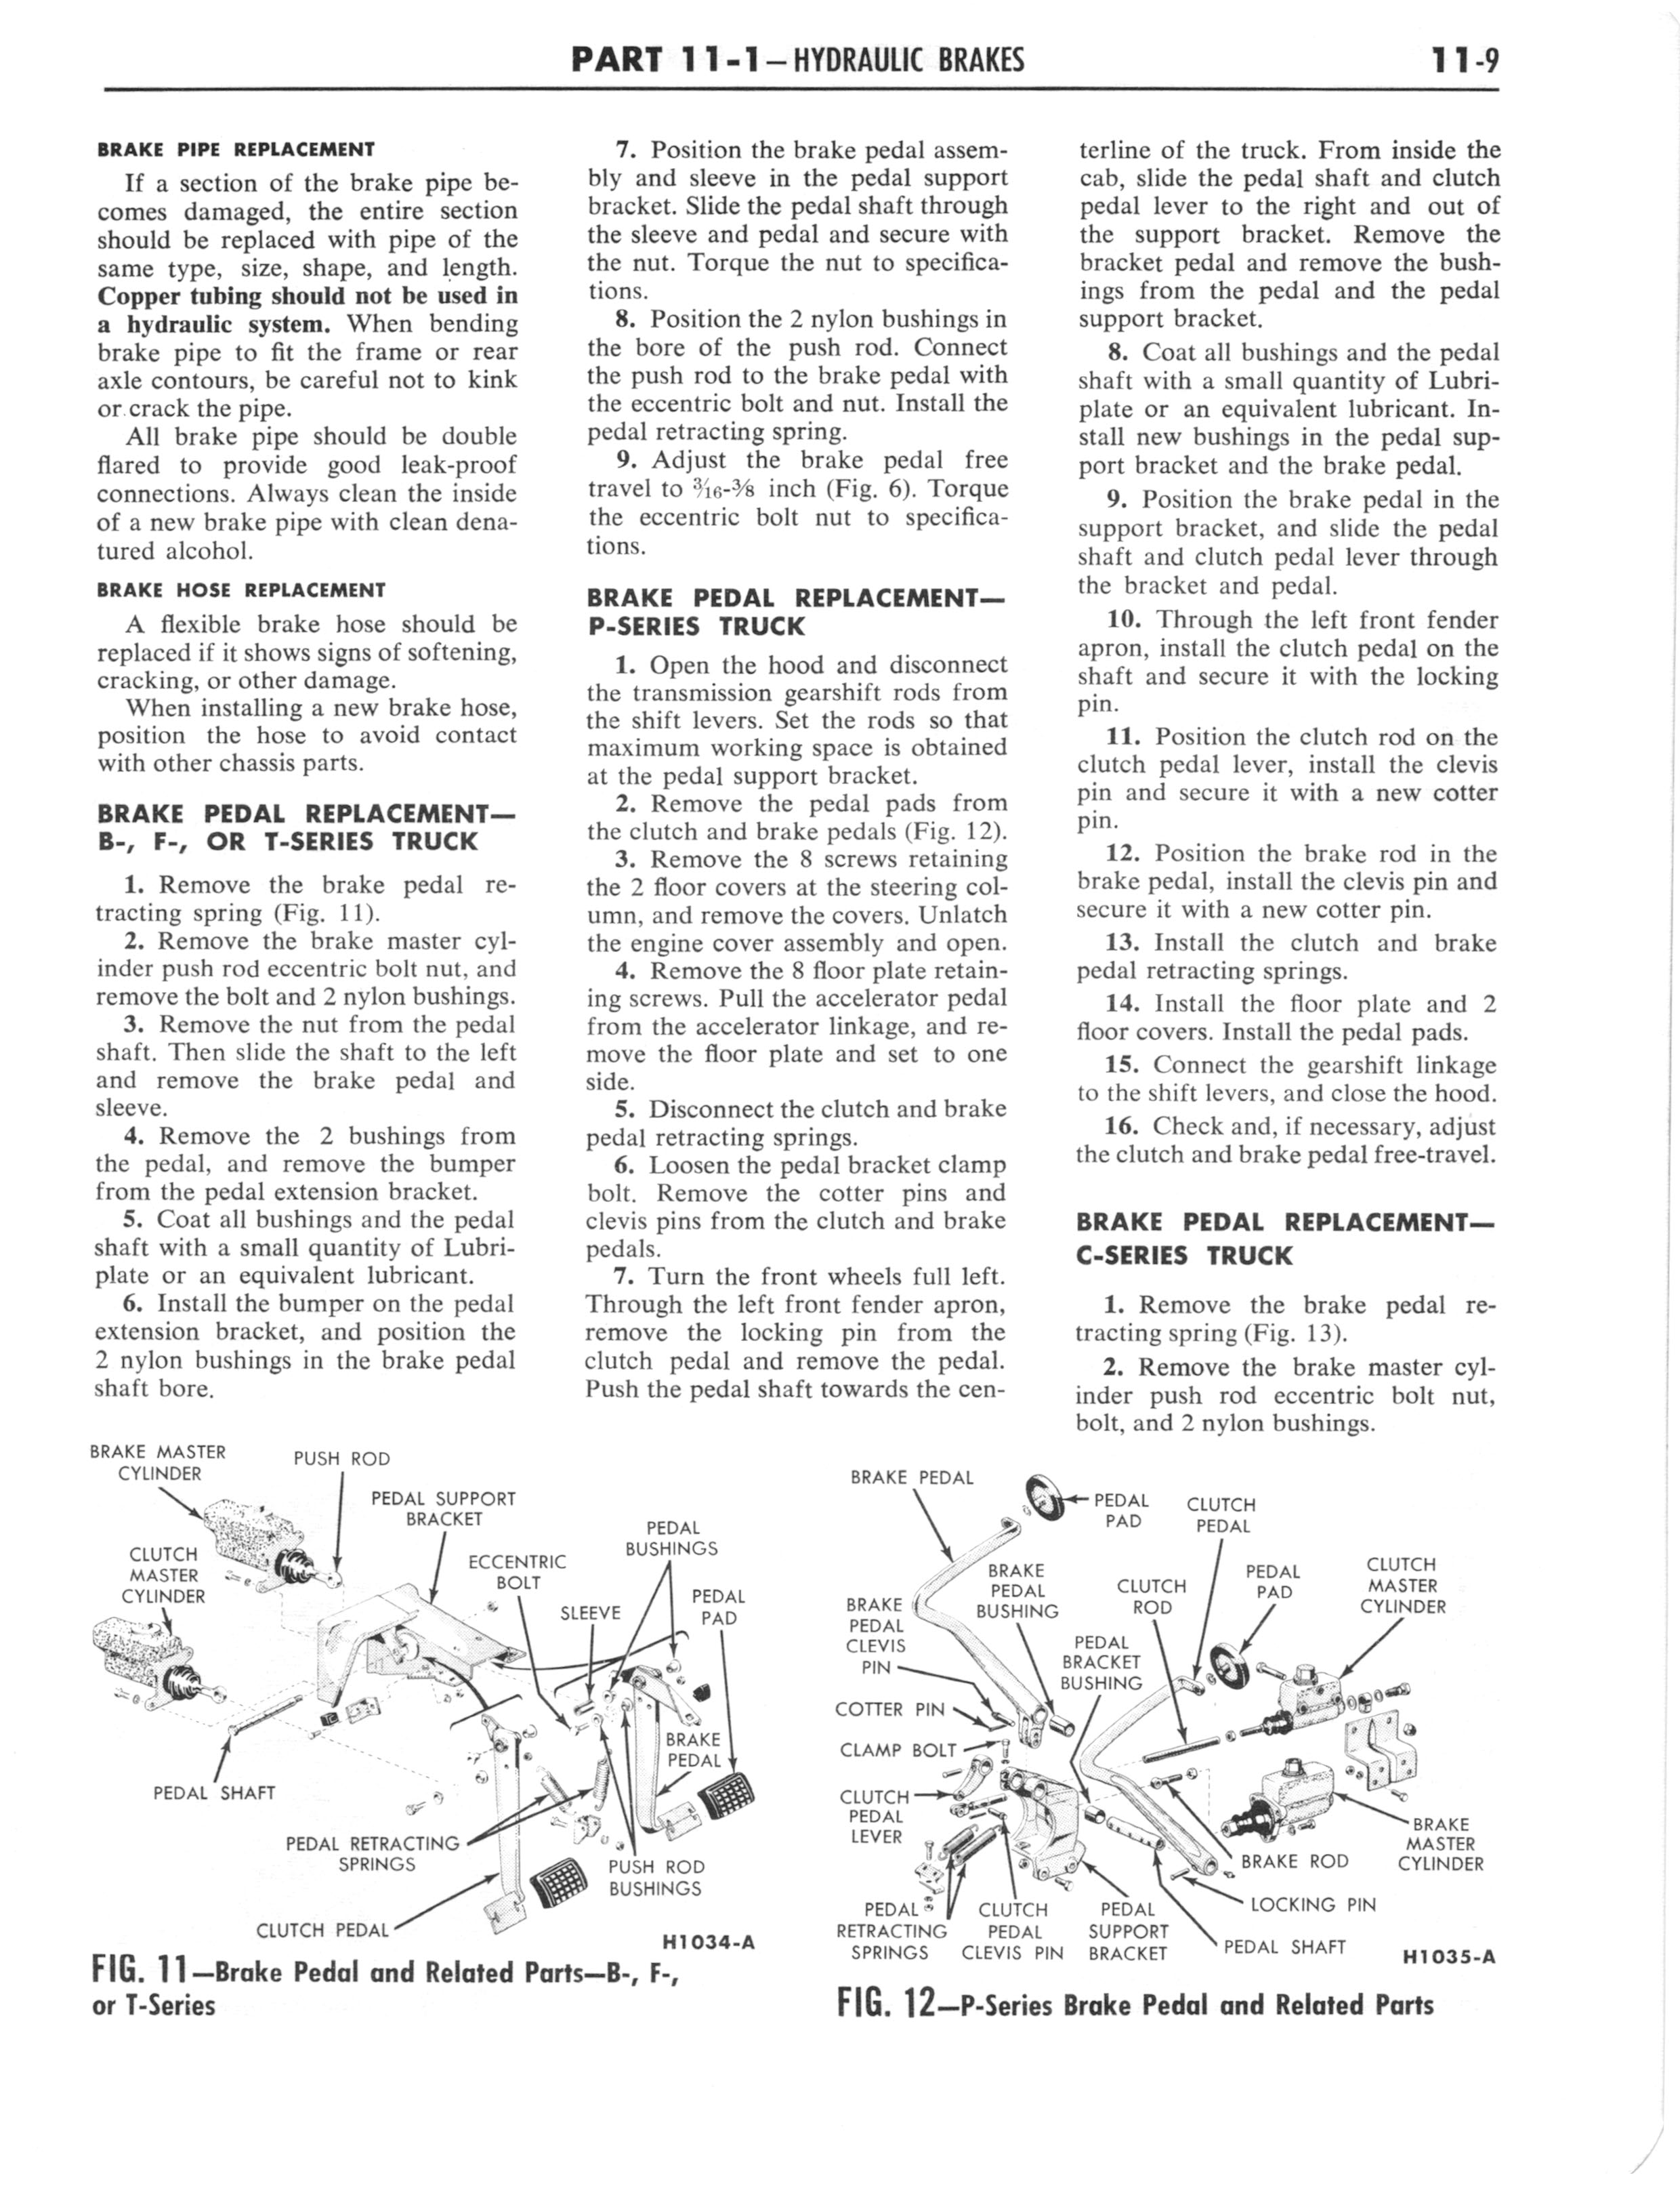 1960 Ford and Mercury Truck Shop Manual page 488 of 641